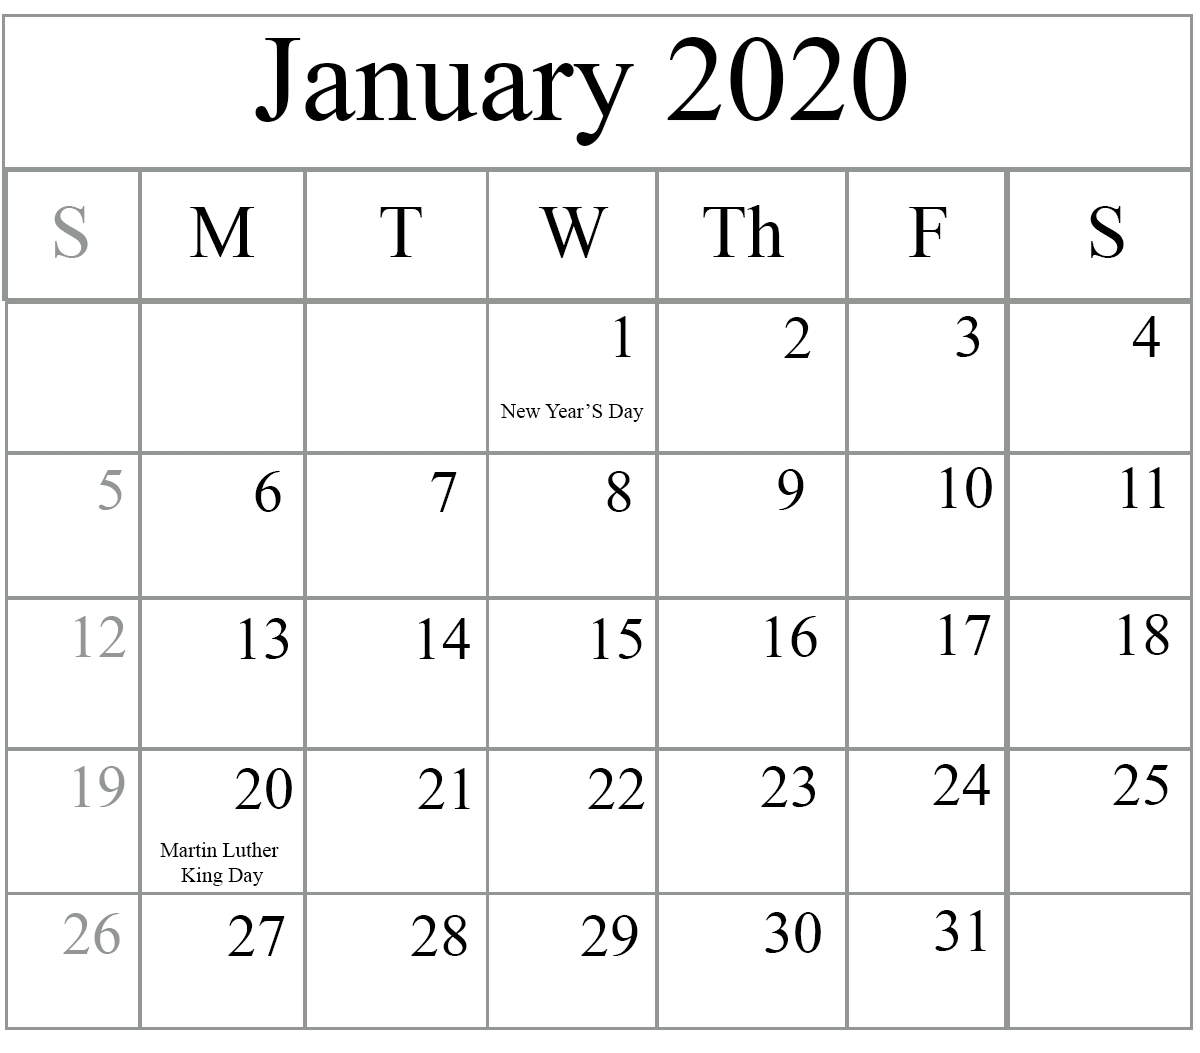 Free January 2020 Printable Calendar In Pdf, Excel & Word-January 2020 Calendar Dates